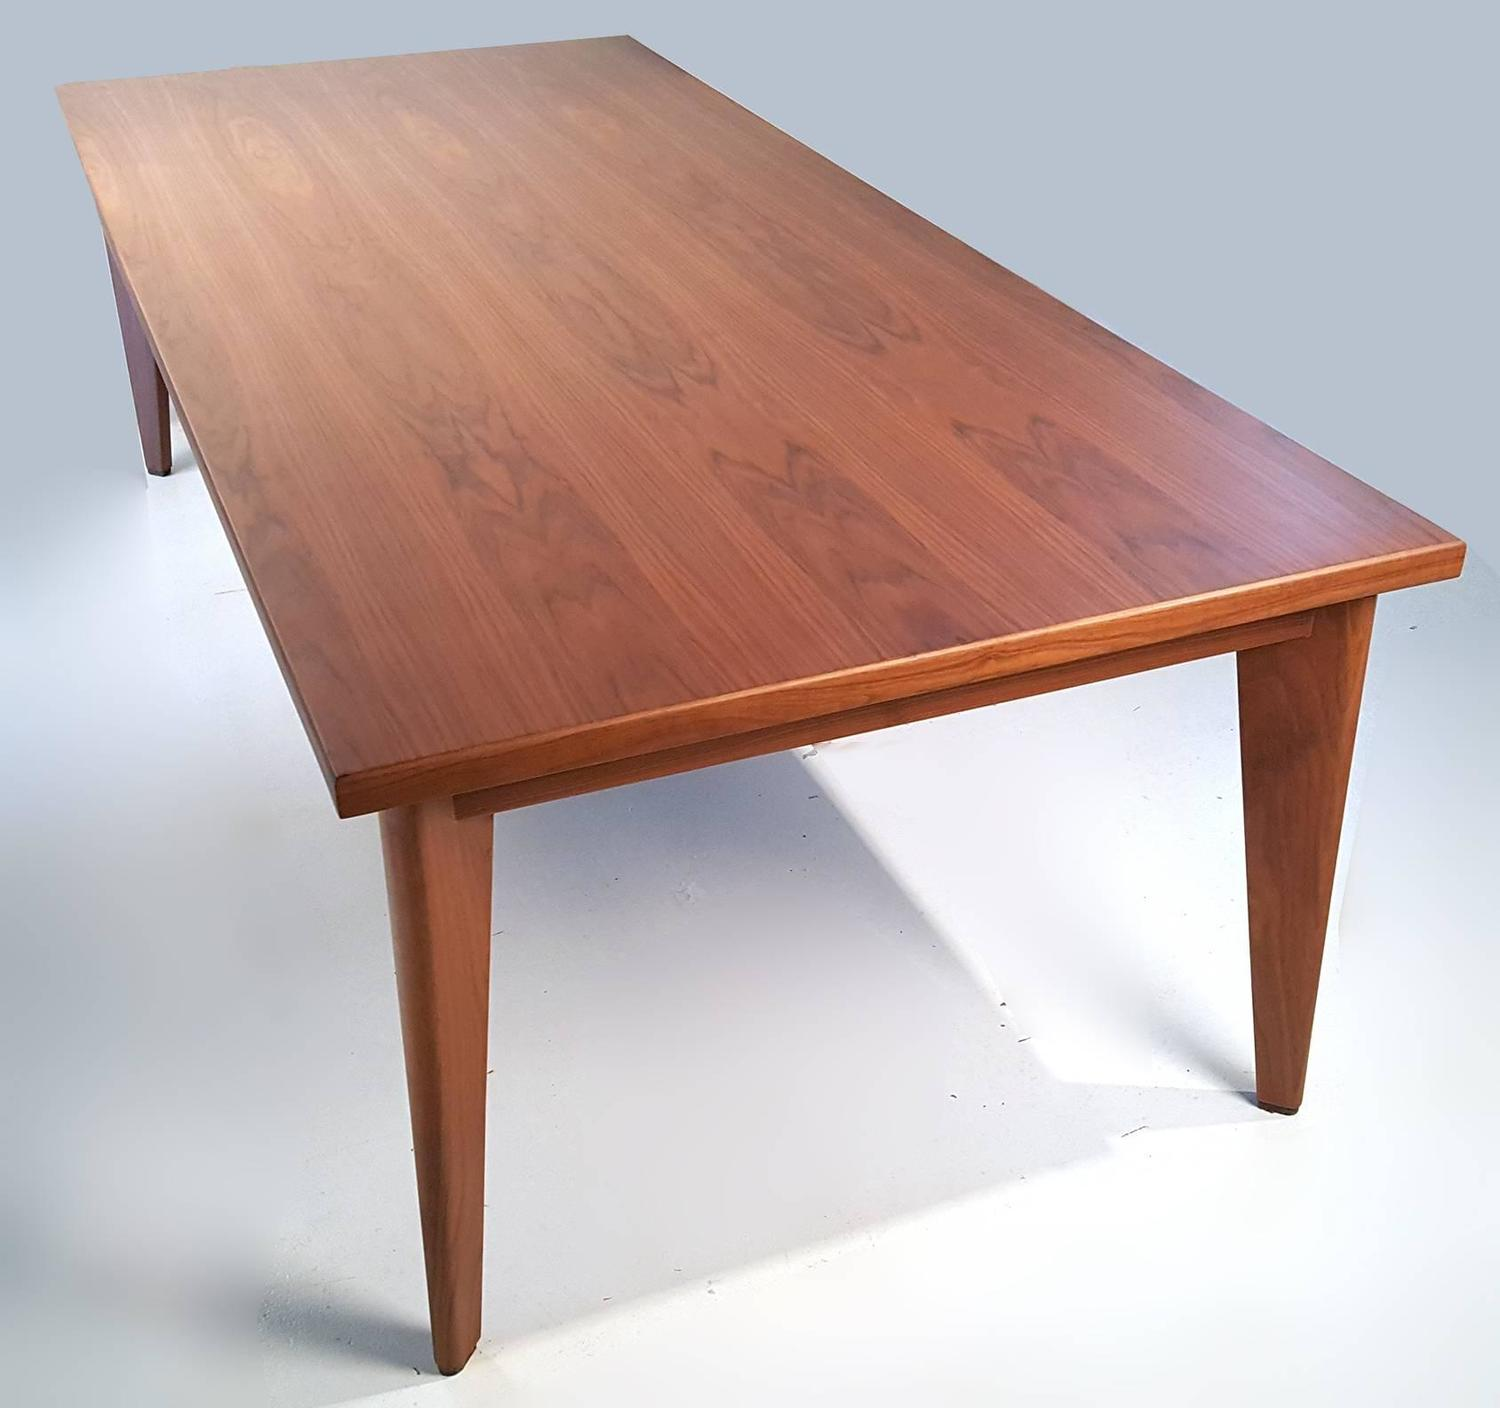 Custom-Made Solid Walnut Dining Table From The Studio Of